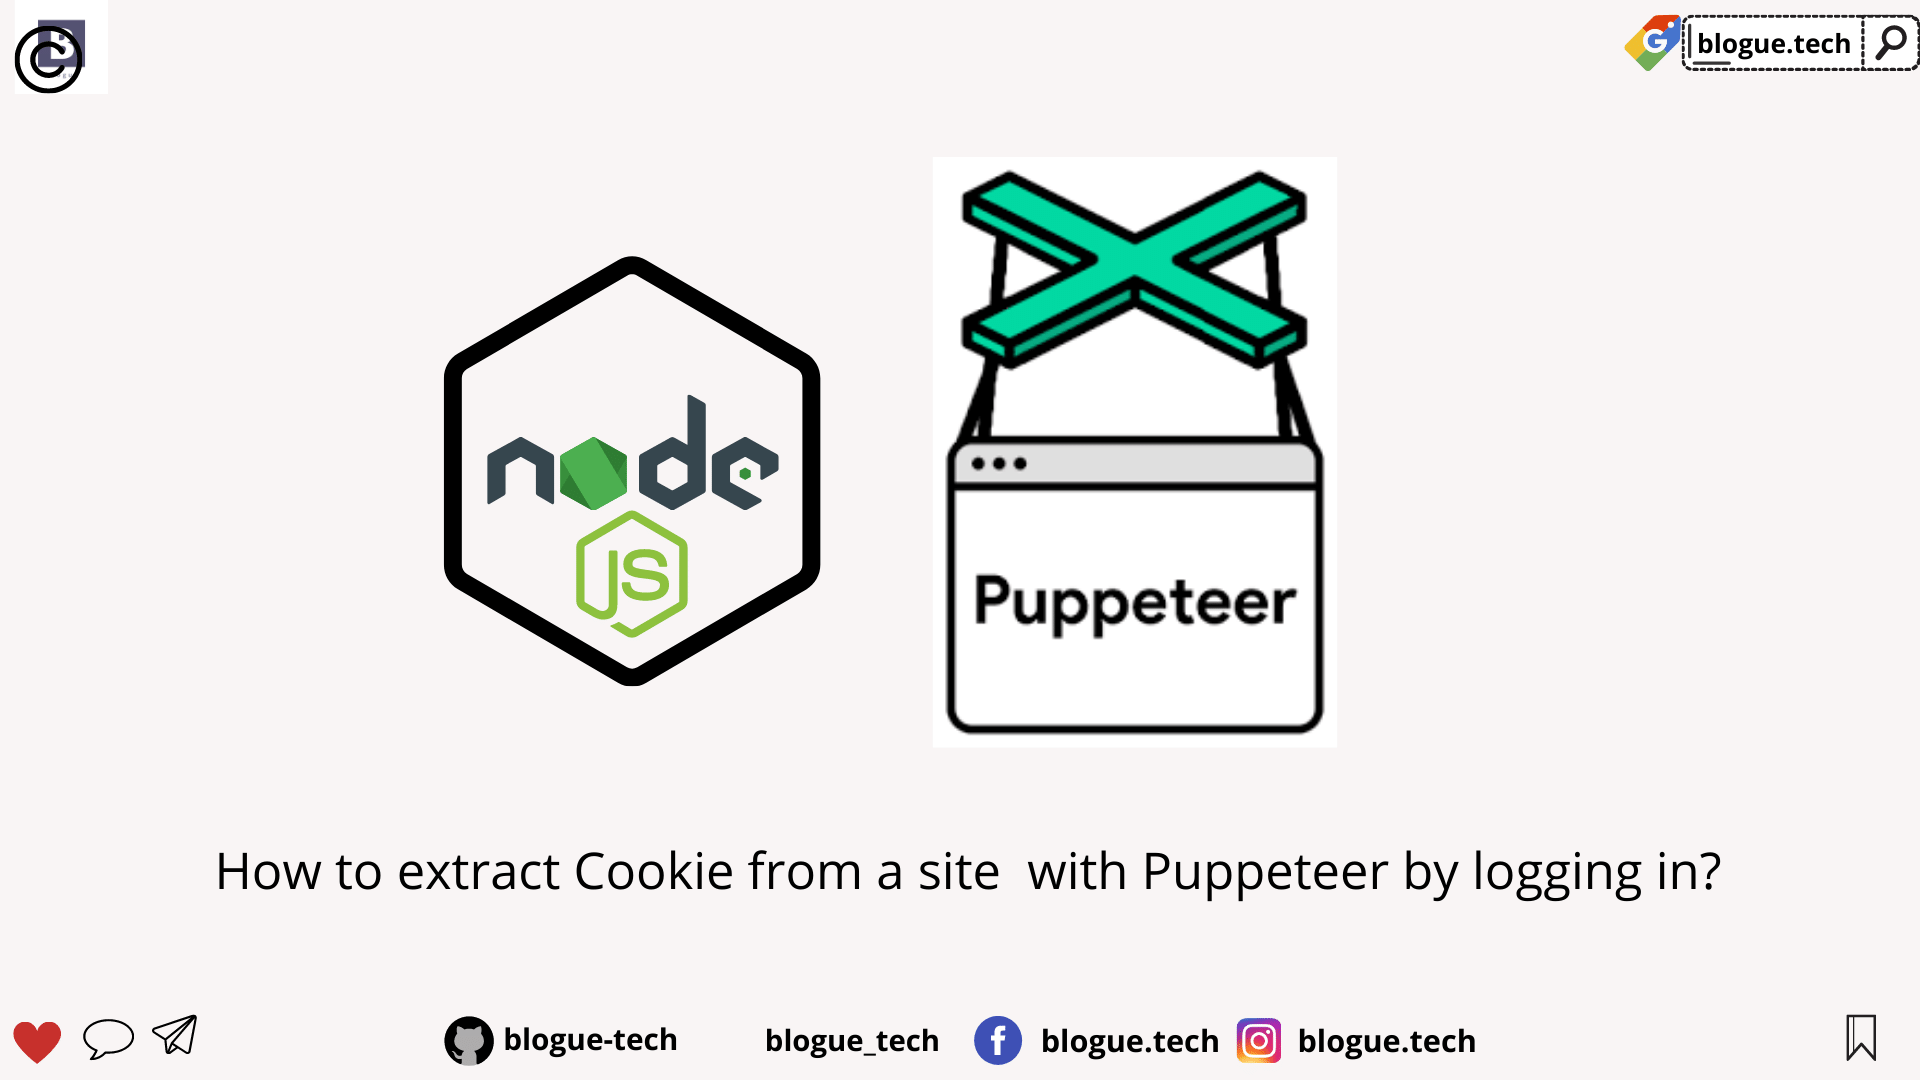 How to extract Cookie from a site  with Puppeteer by logging in?